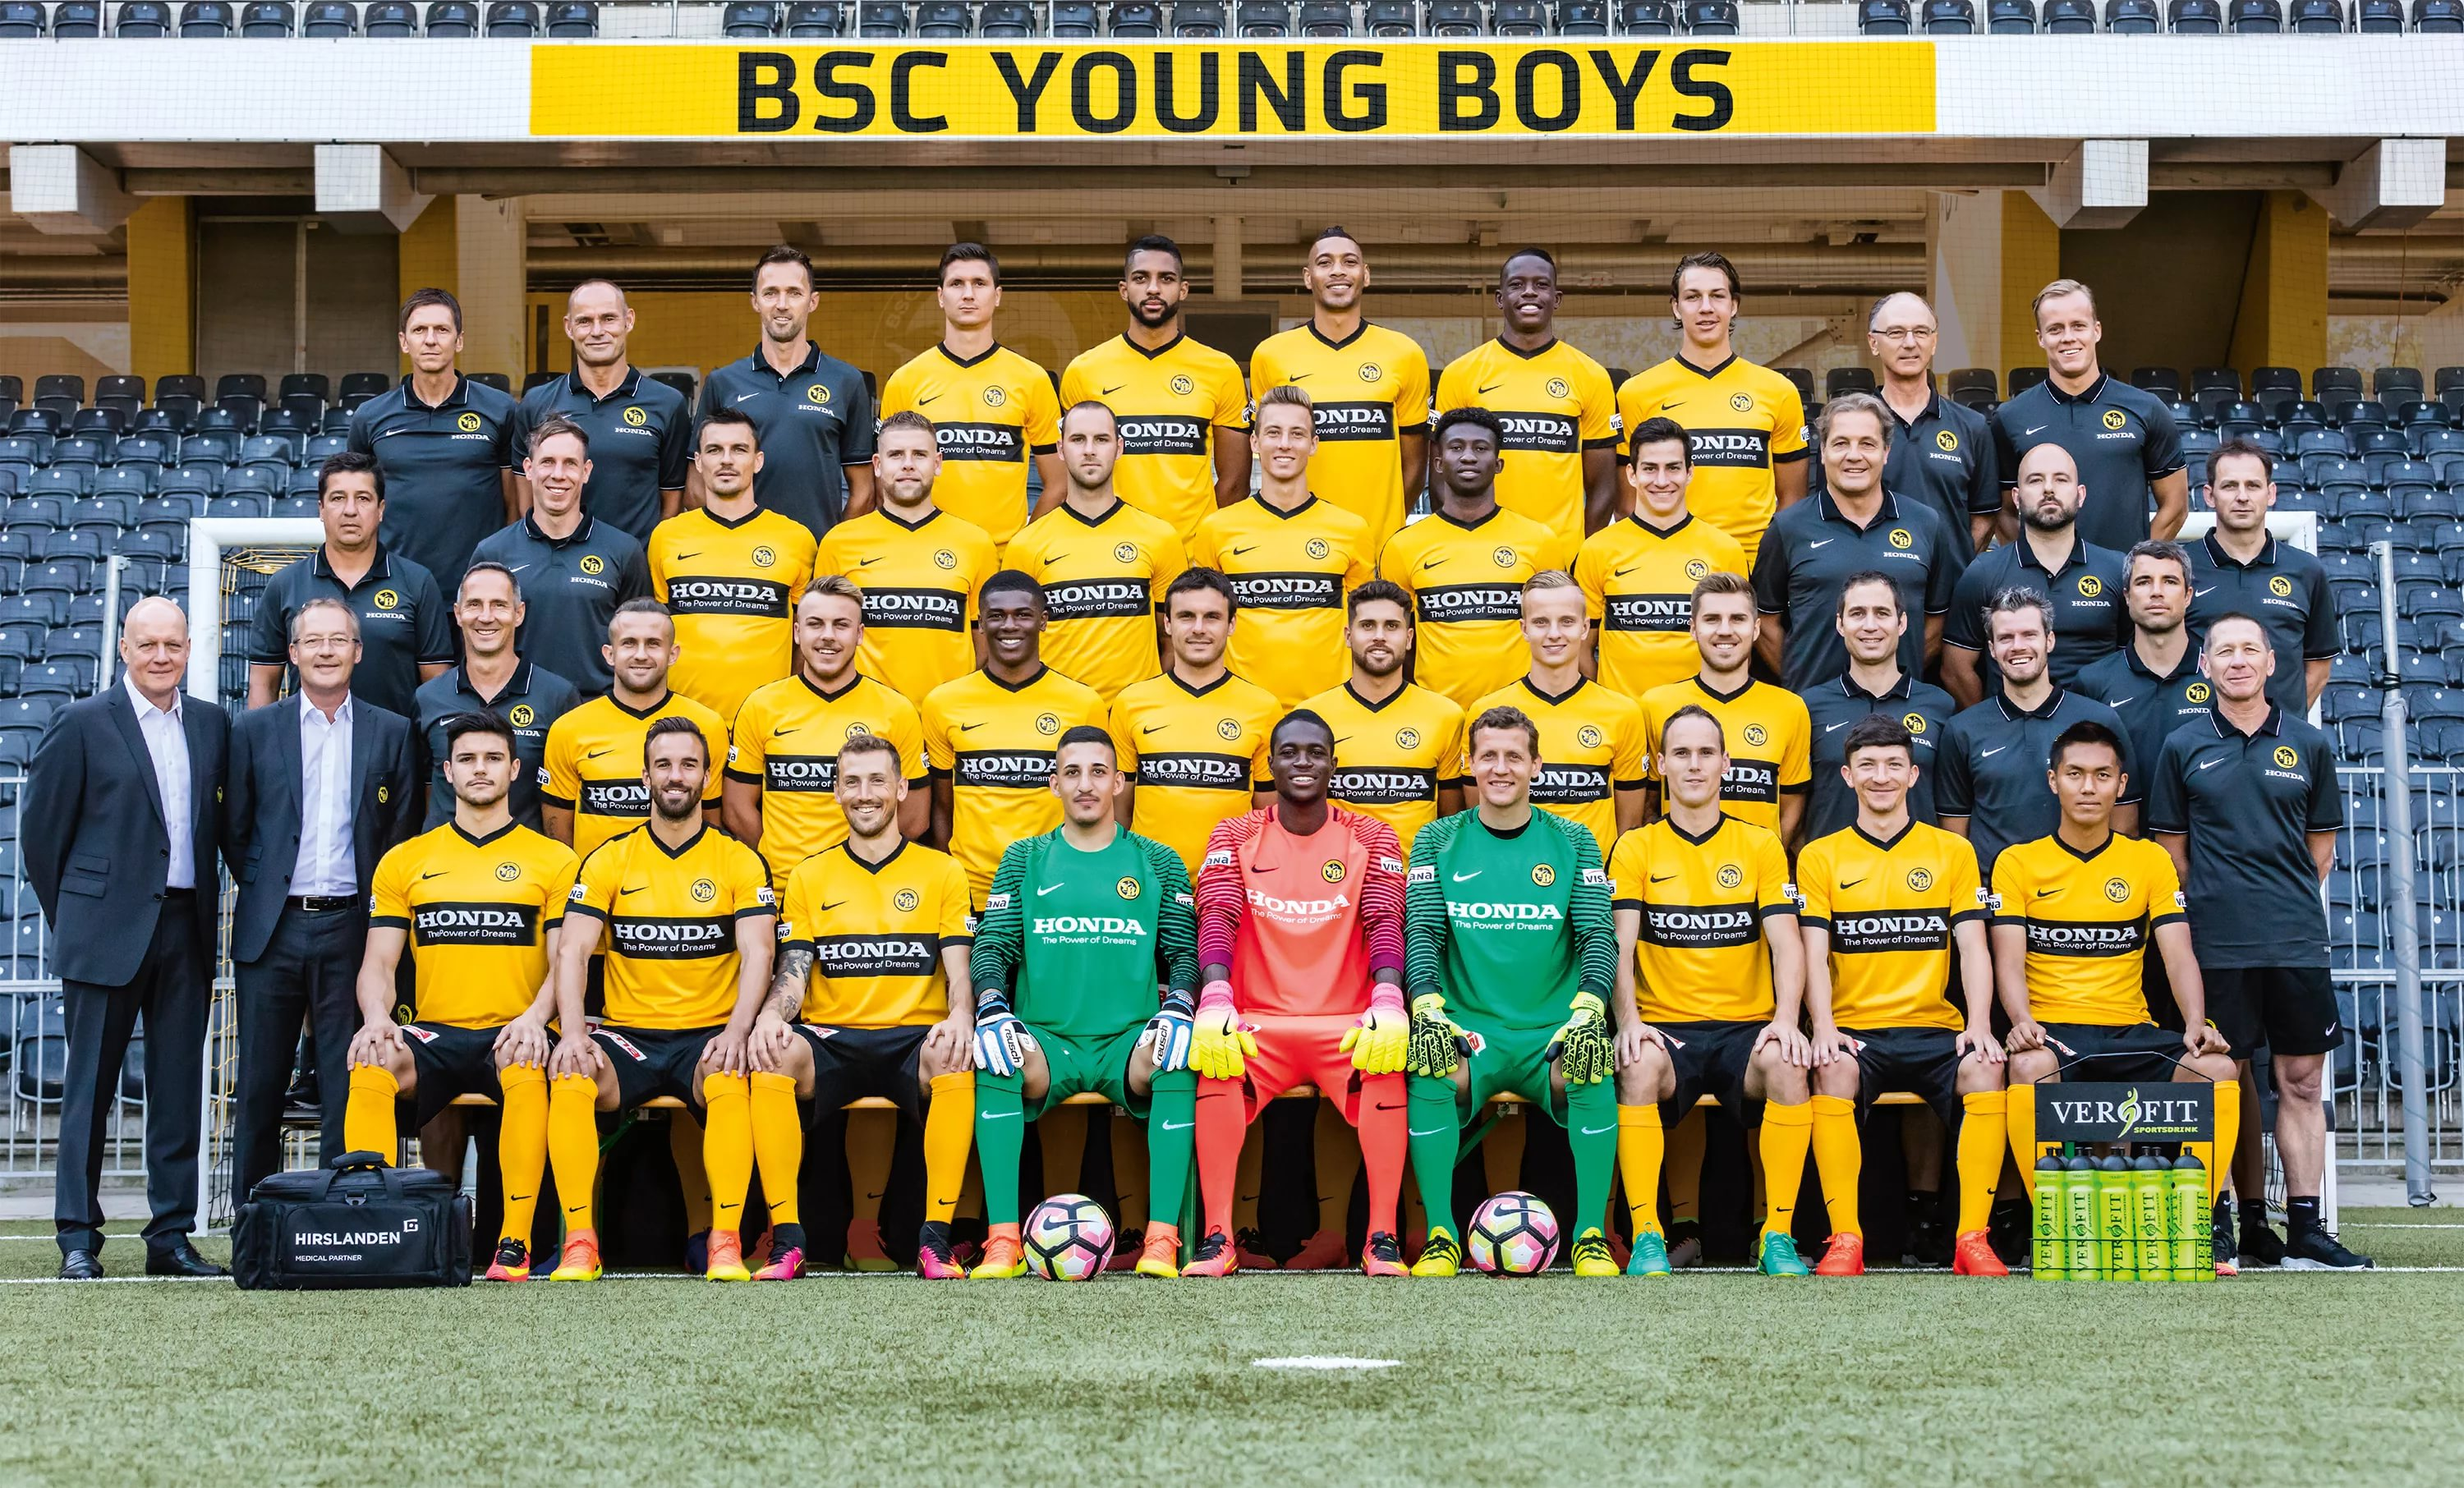 BSC Young Boys Teams Background 5